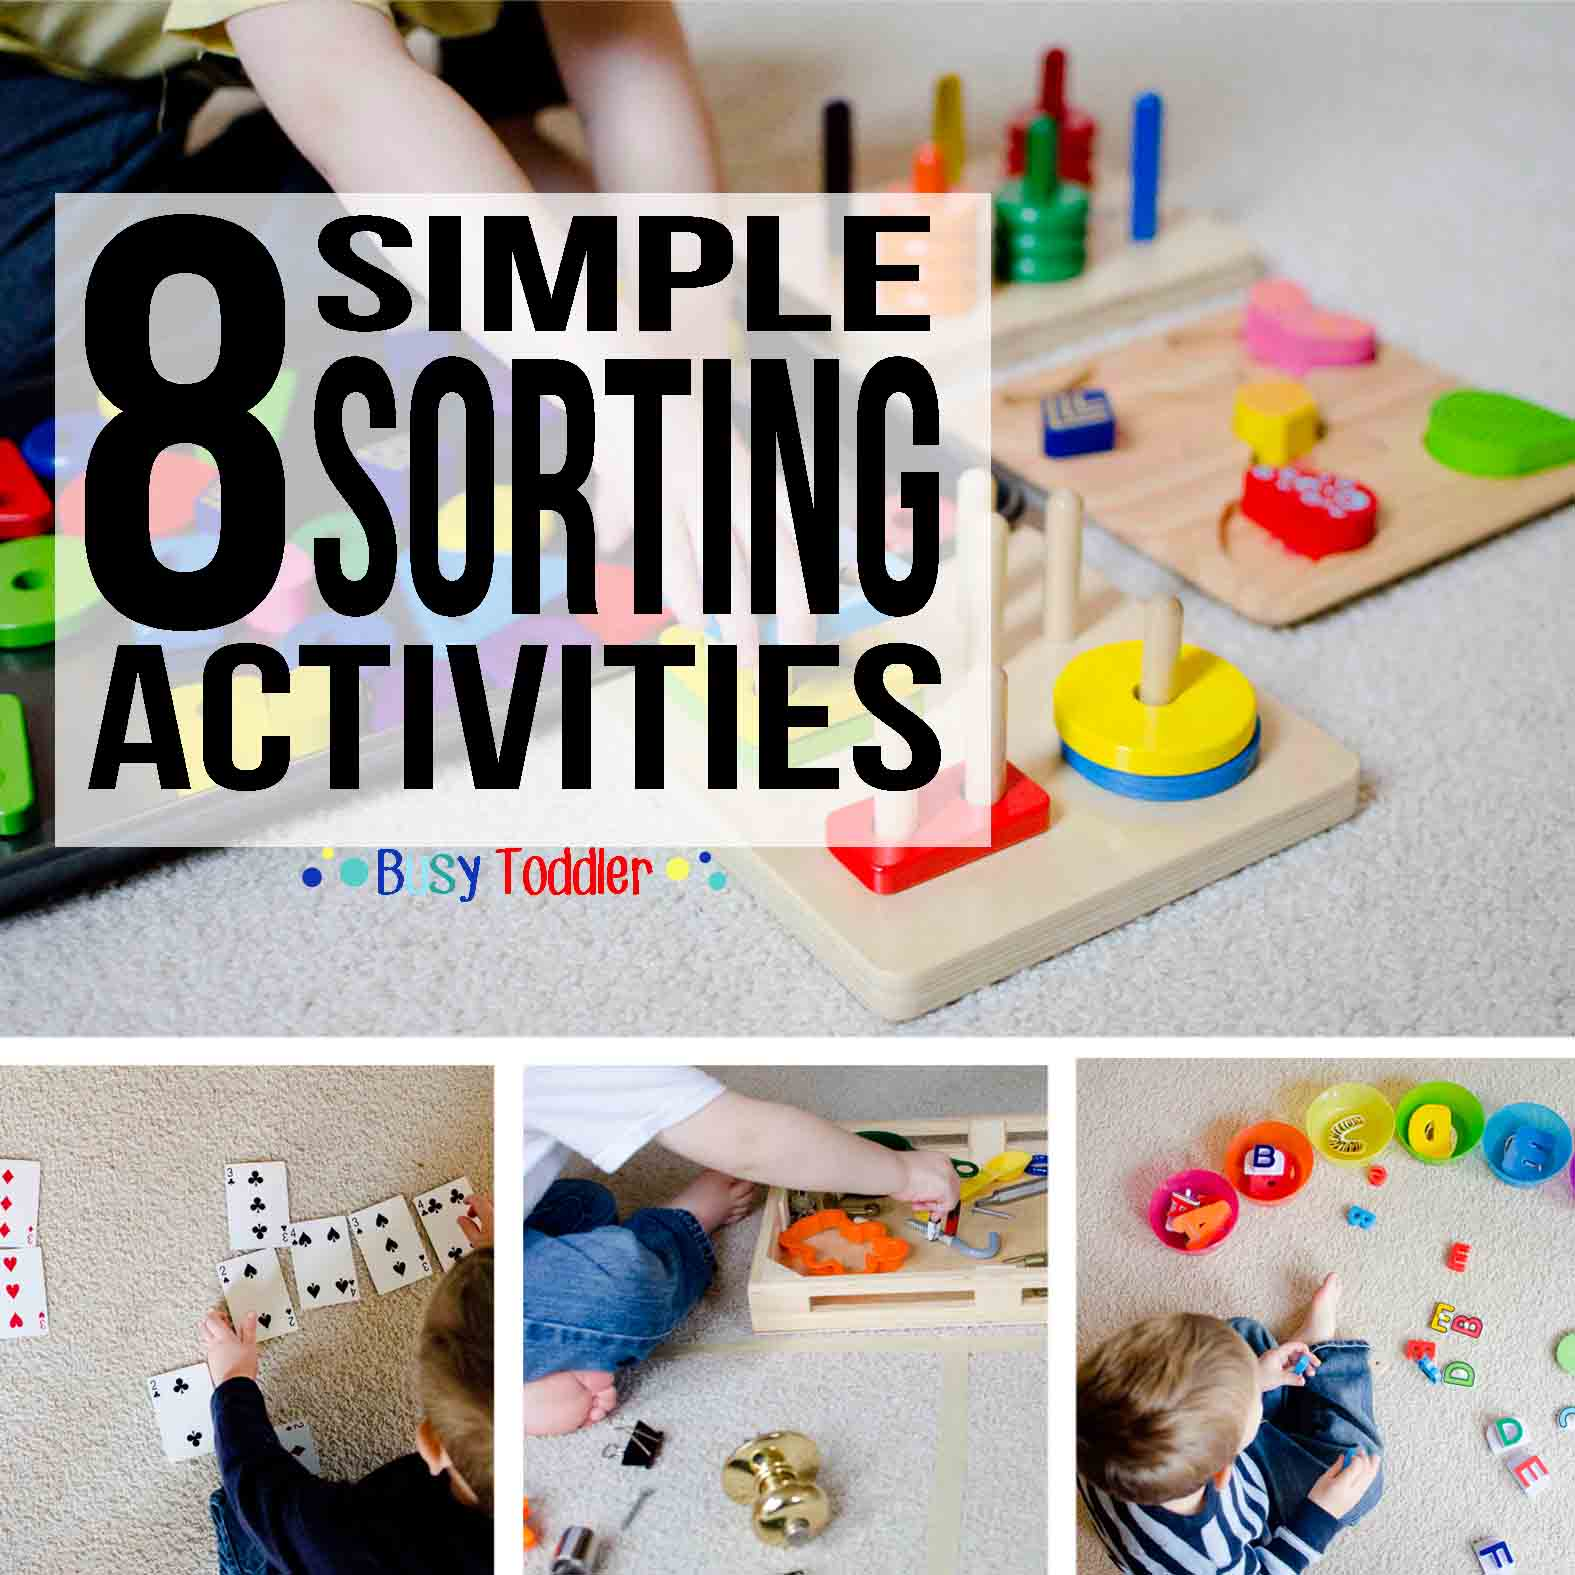 8 Simple Sorting Activities For Toddlers